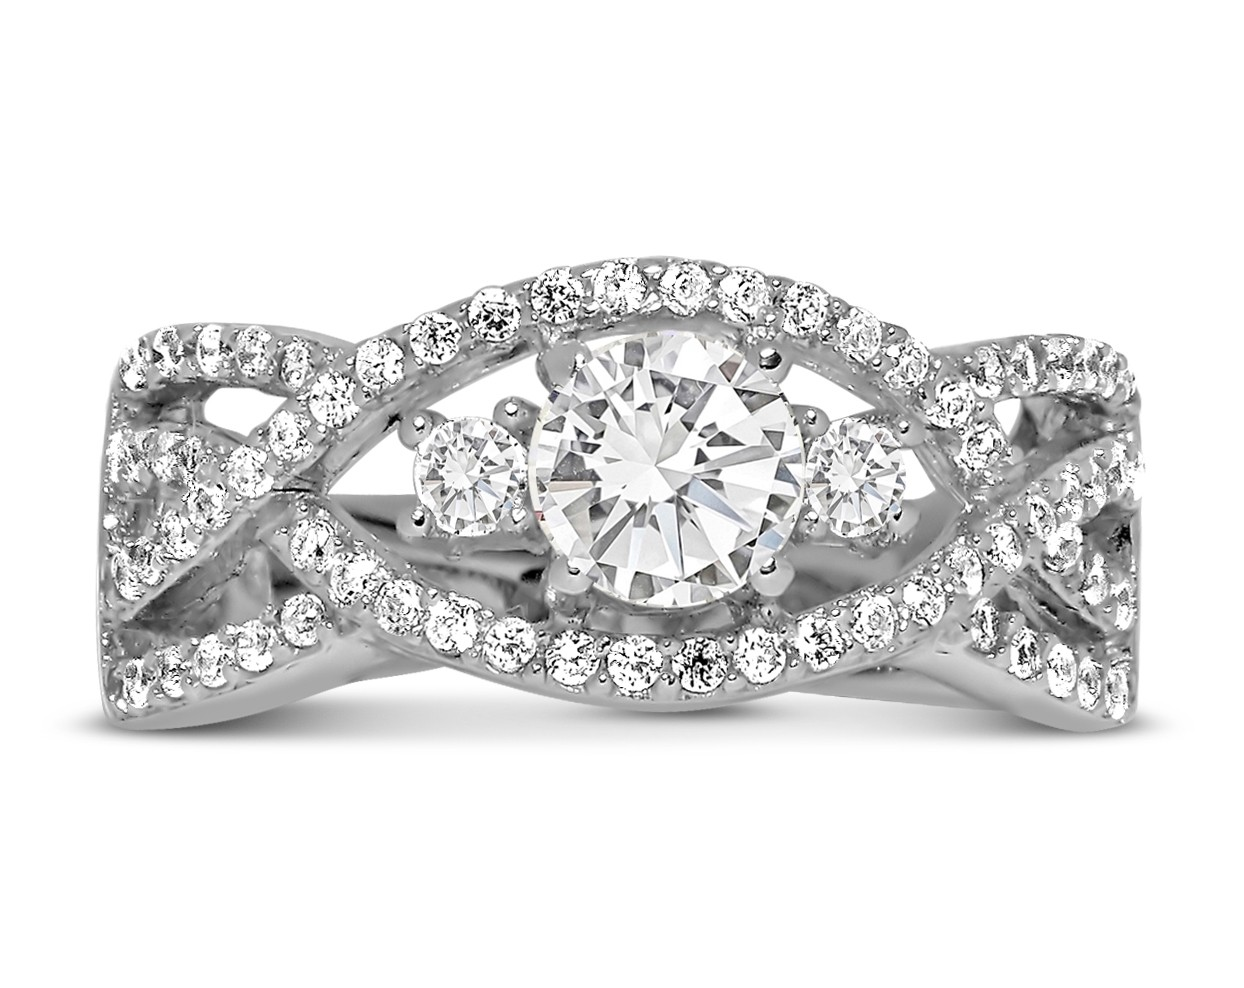 68354b4c9 Perfect Designer 1 carat Round Diamond Engagement Ring for Women in White  Gold.